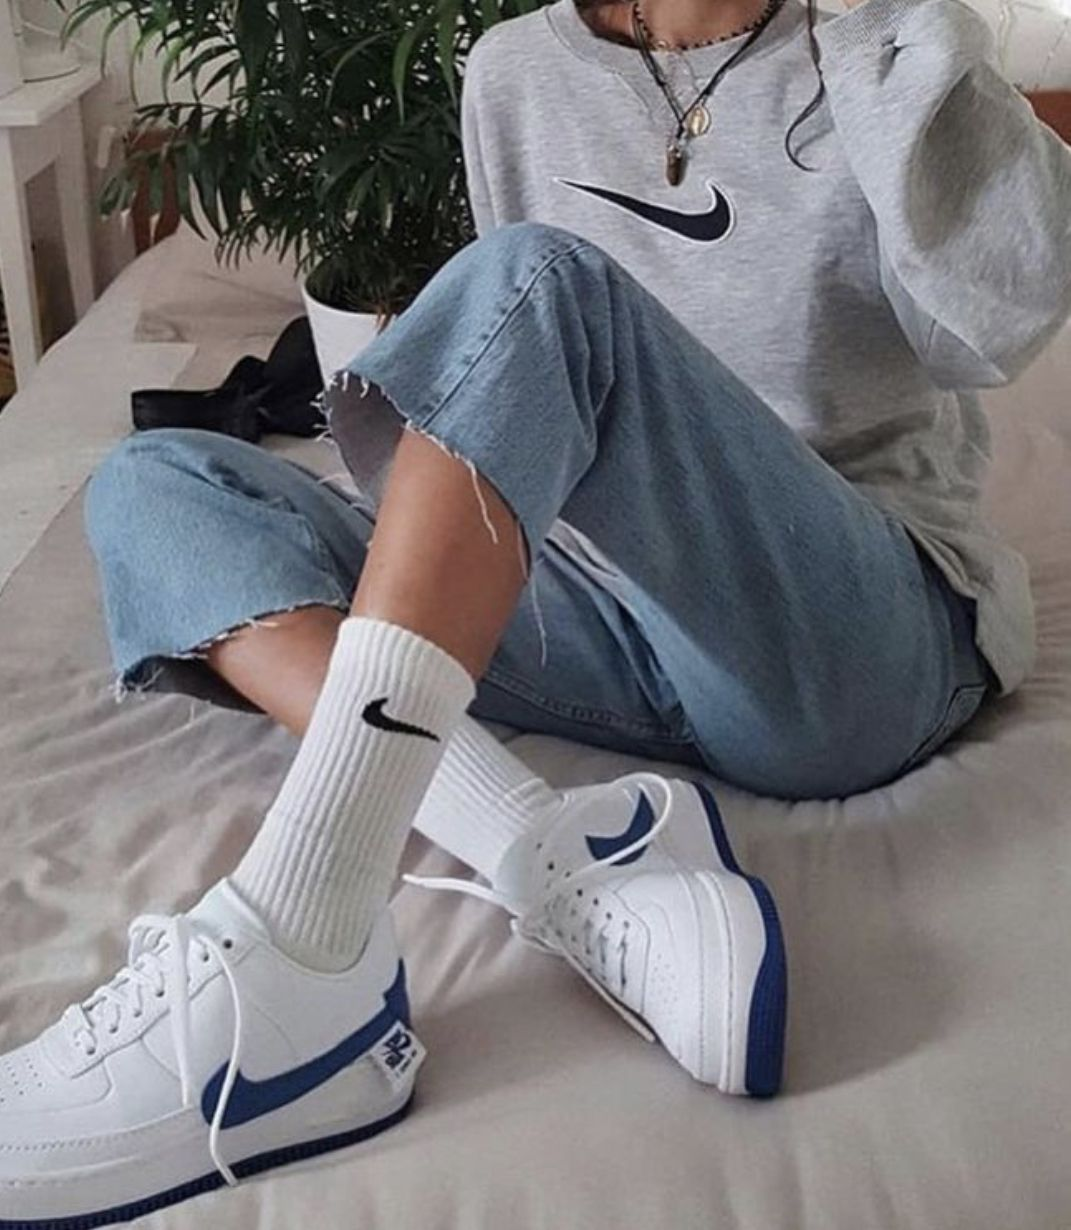 Nike Air | Fashion, Nike air force outfit, Sock outfits